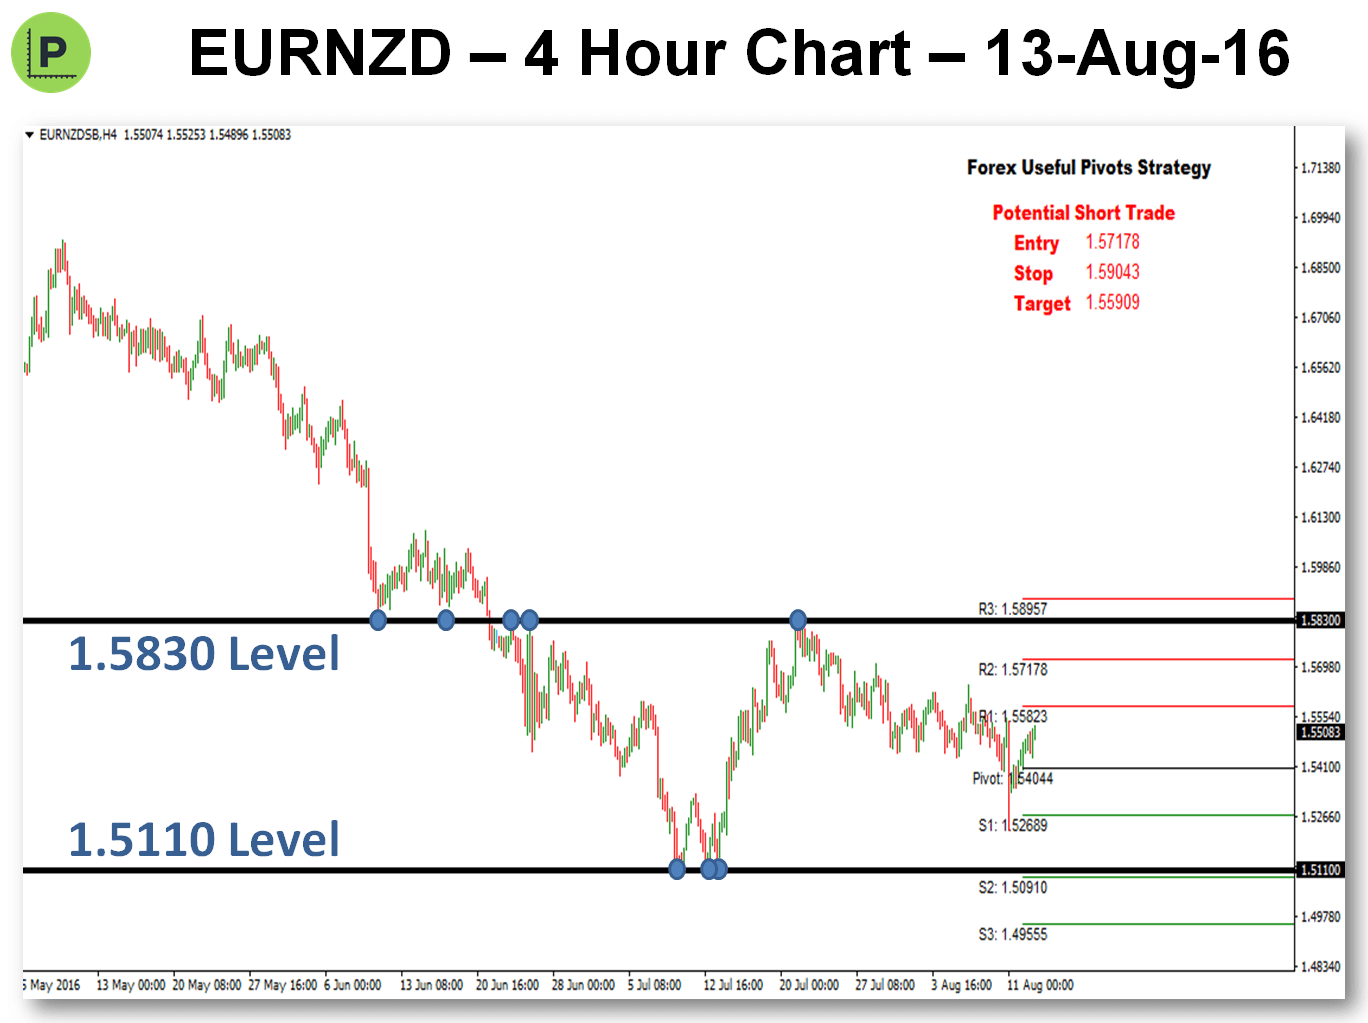 2 Potential Pivot Trades For Next Week - 13-Aug-16 EURNZD Chart 2